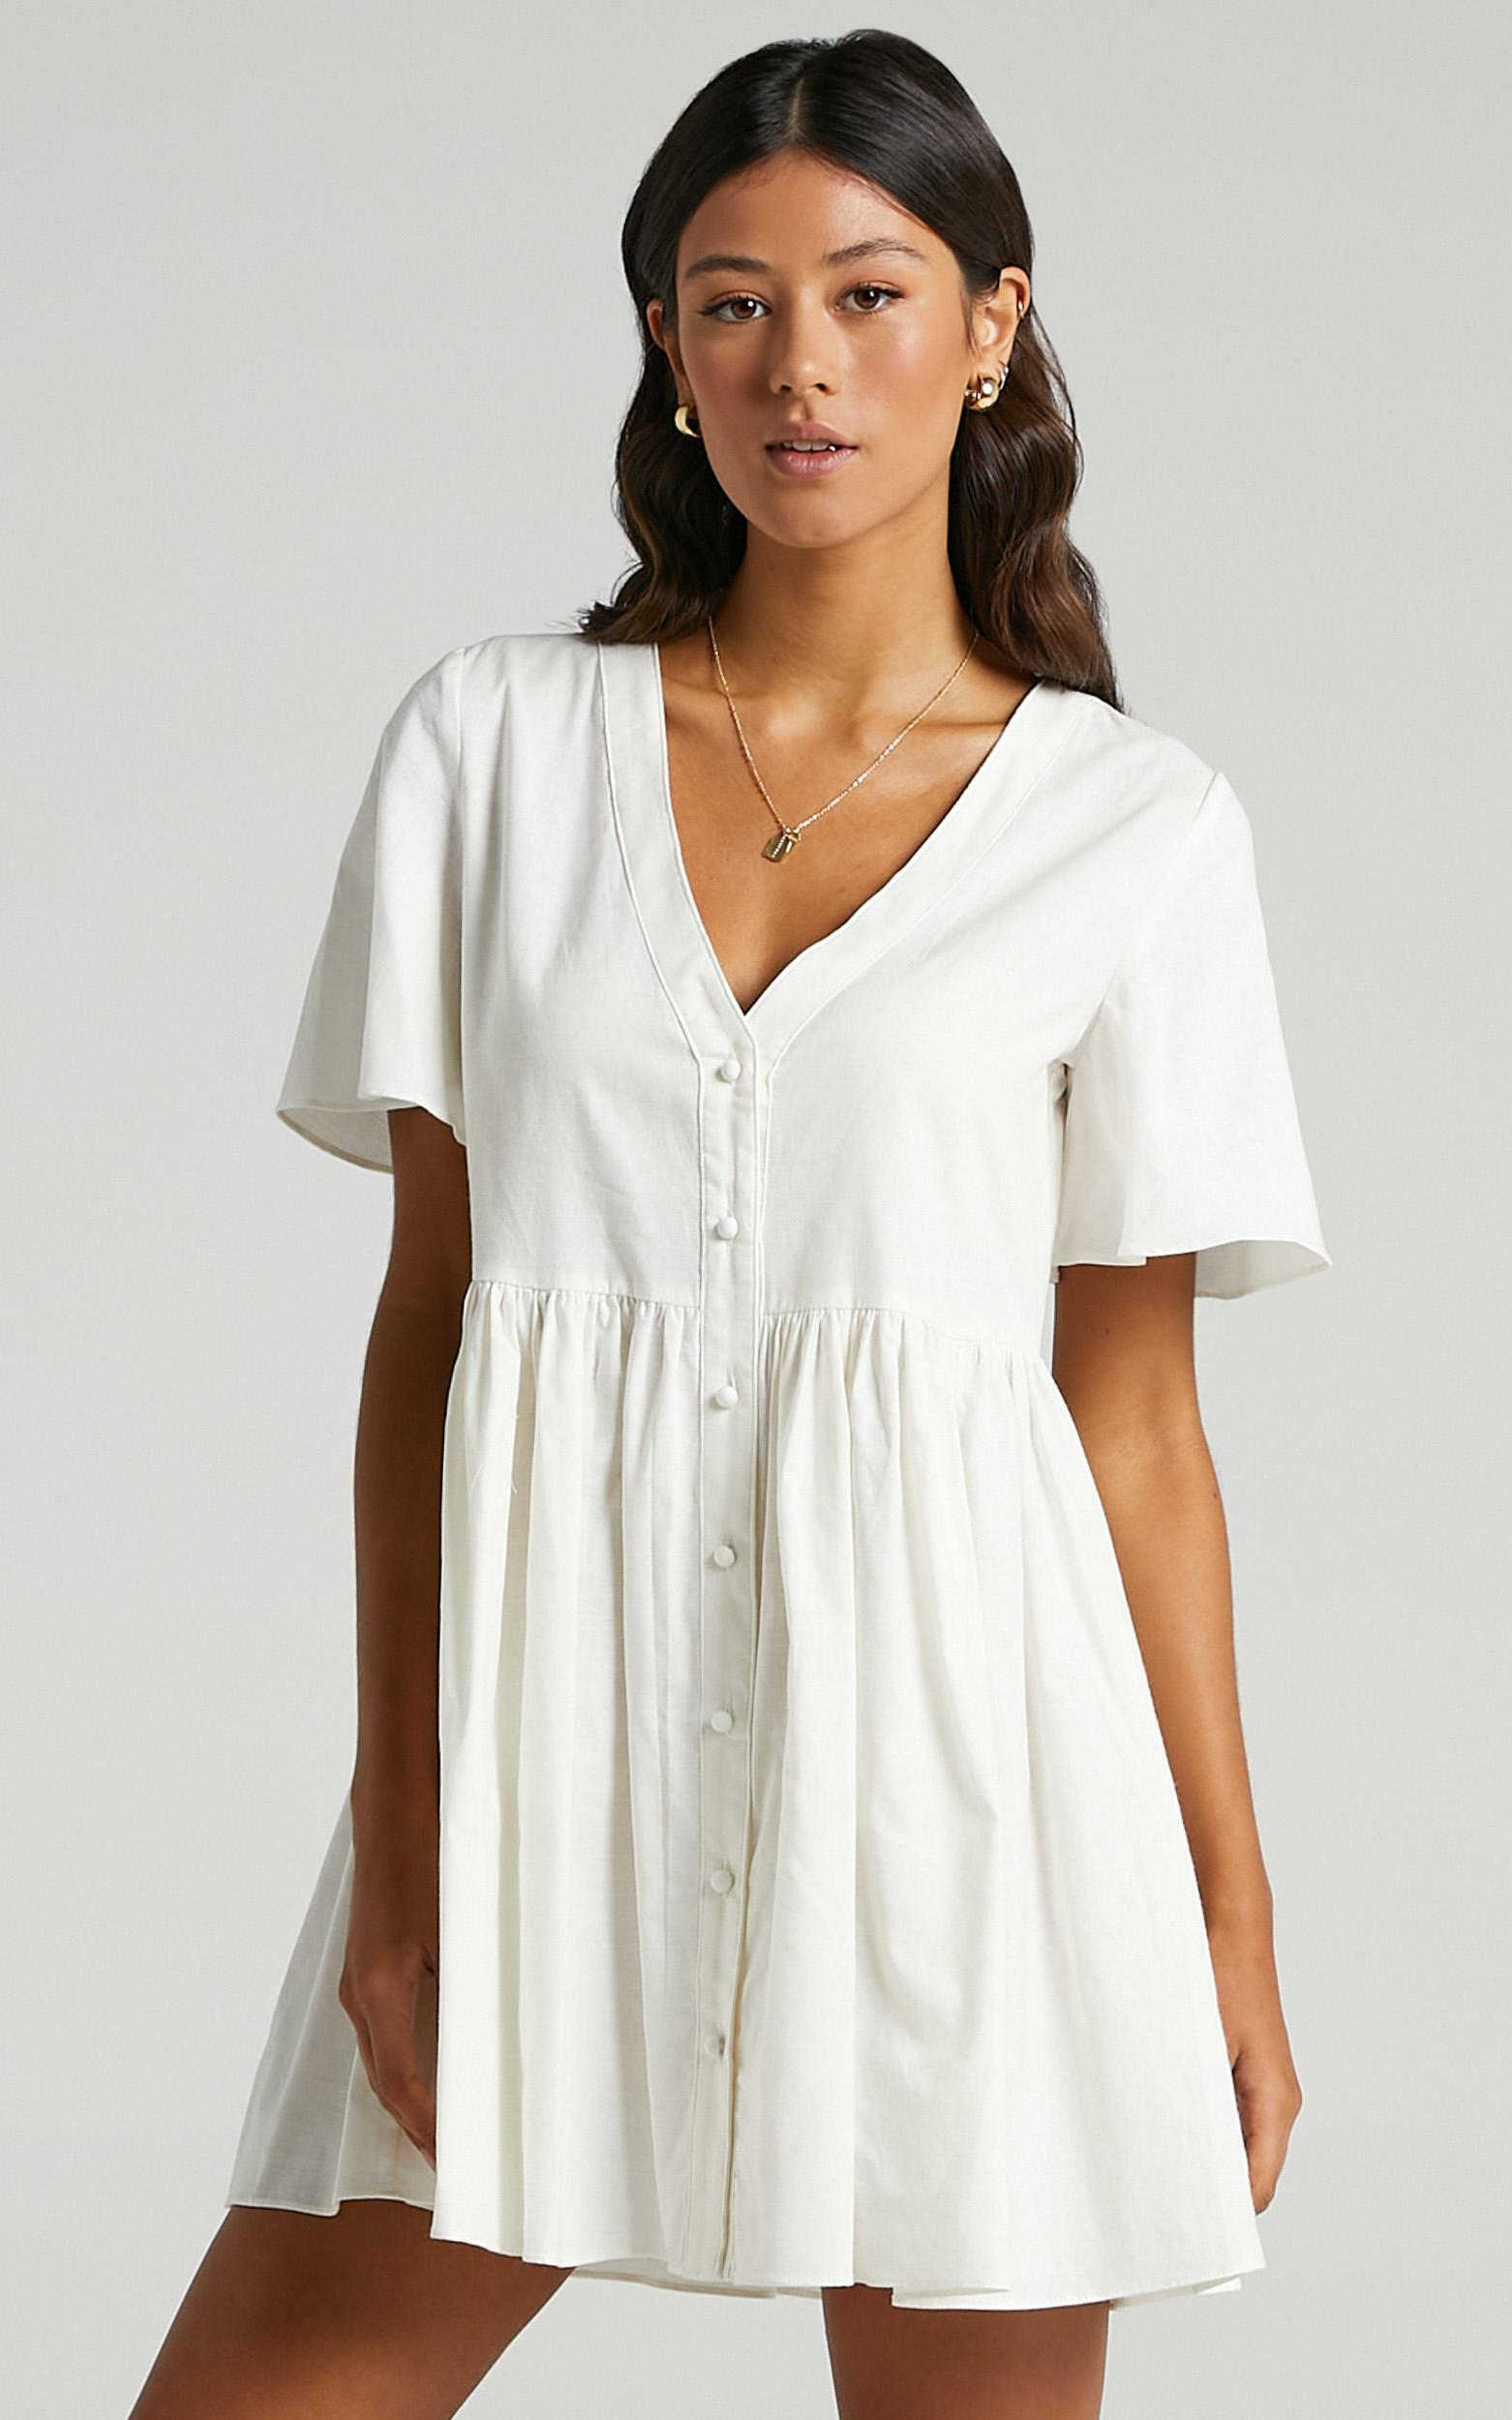 Staycation Dress in White - 04, WHT5, hi-res image number null